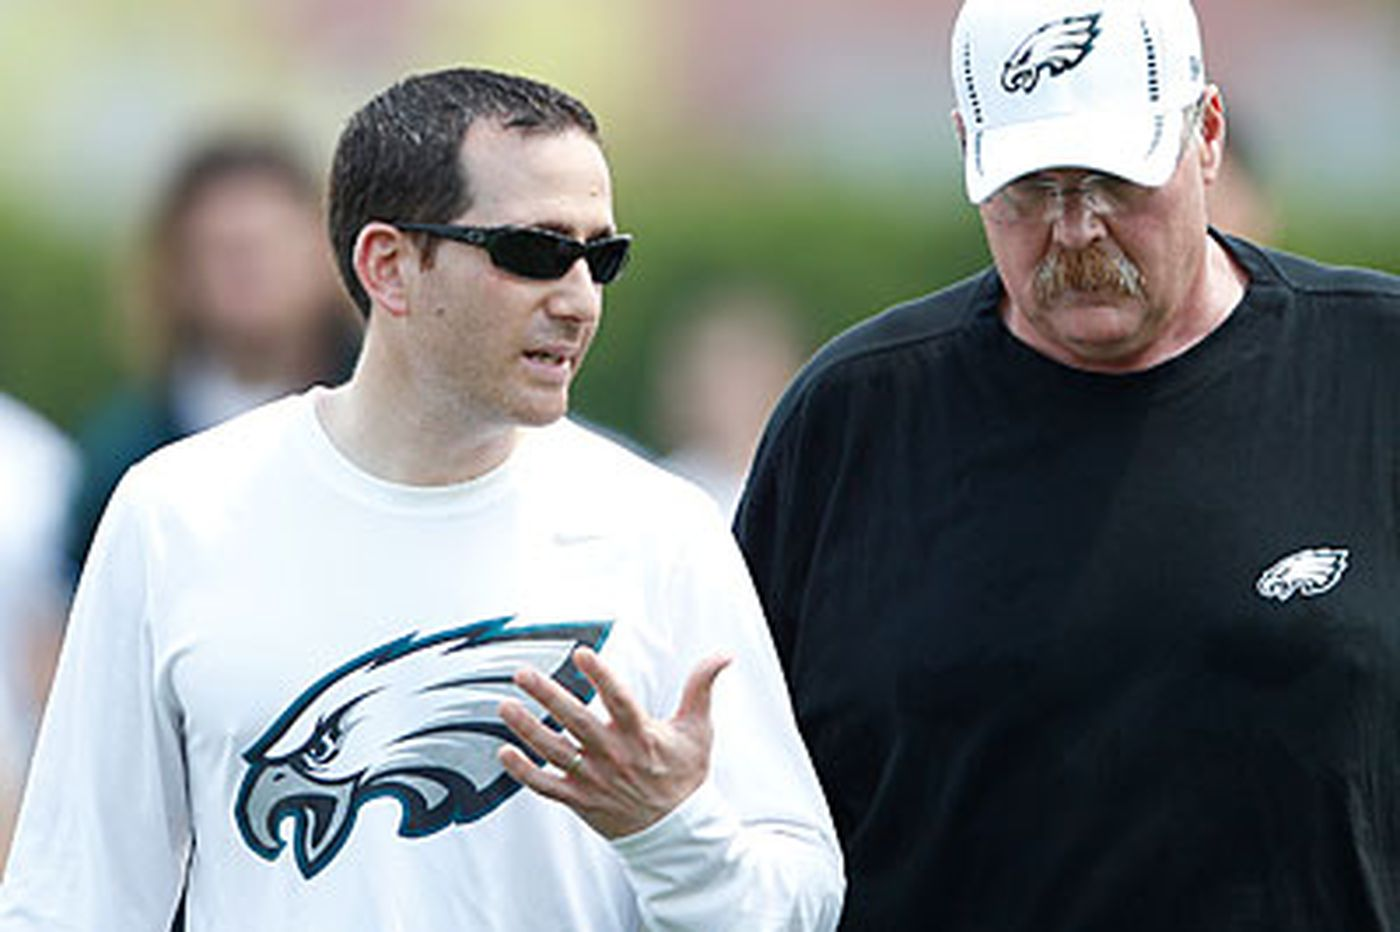 Eagles may find market for NFL coaches competitive